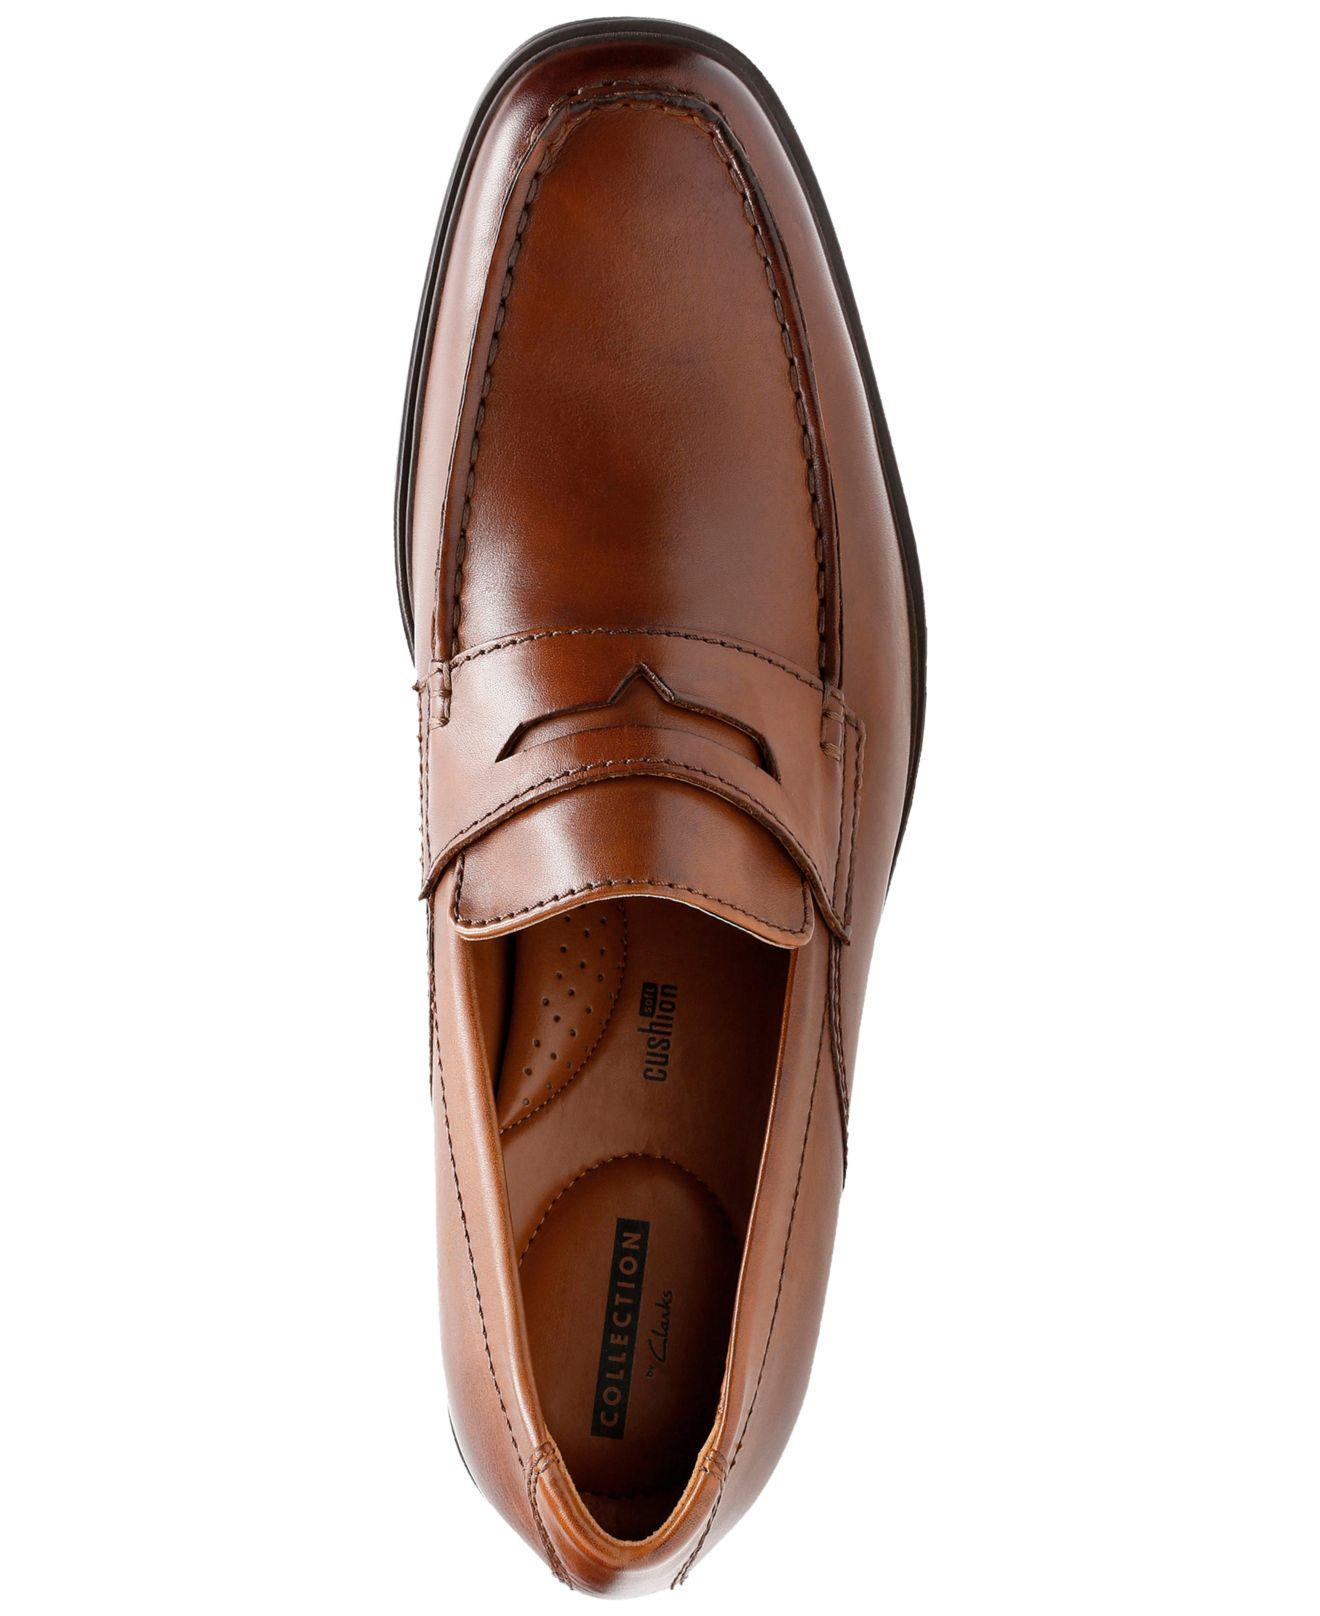 8bff77f3456 Lyst - Clarks Tilden Way Leather Penny Loafers in Brown for Men ...